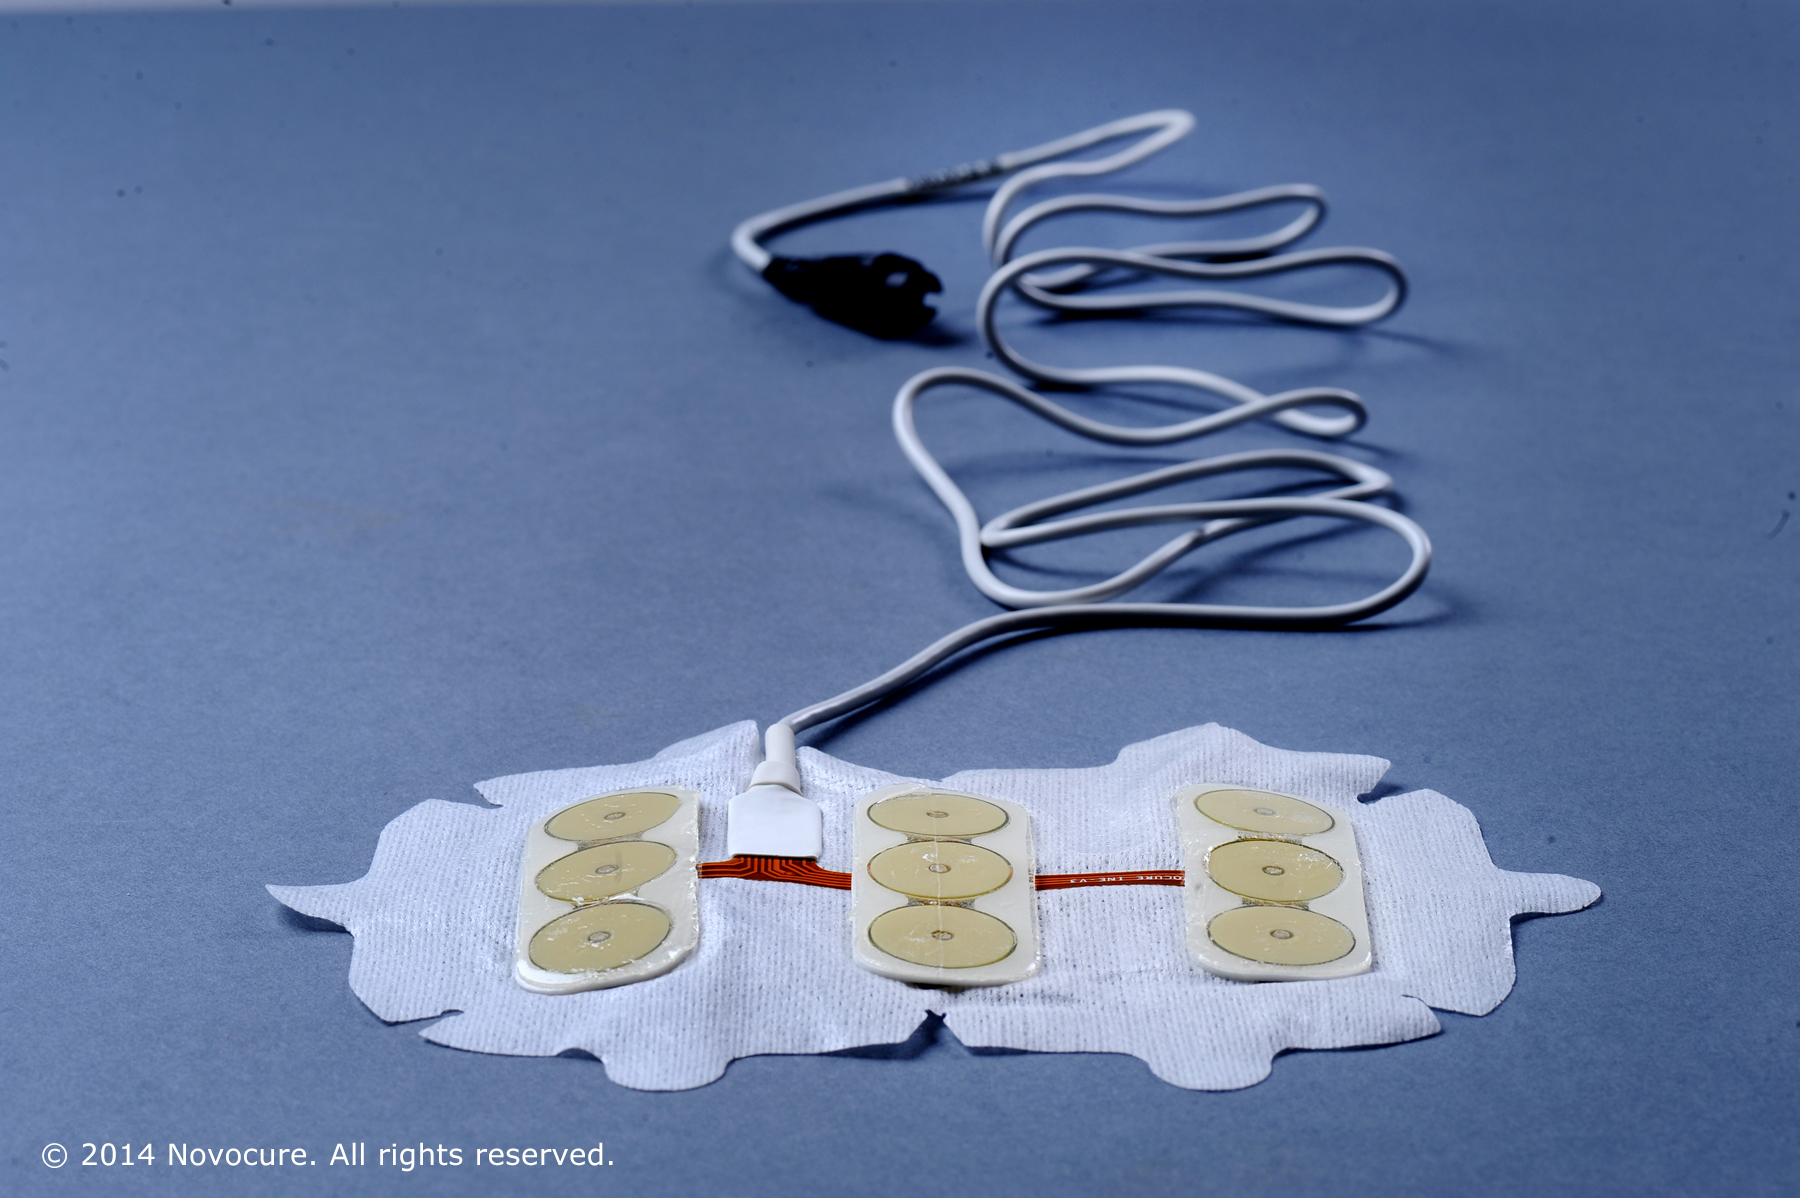 Optune works by emitting low-level, alternating electrical fields through four electrode pads attached to the scalp.